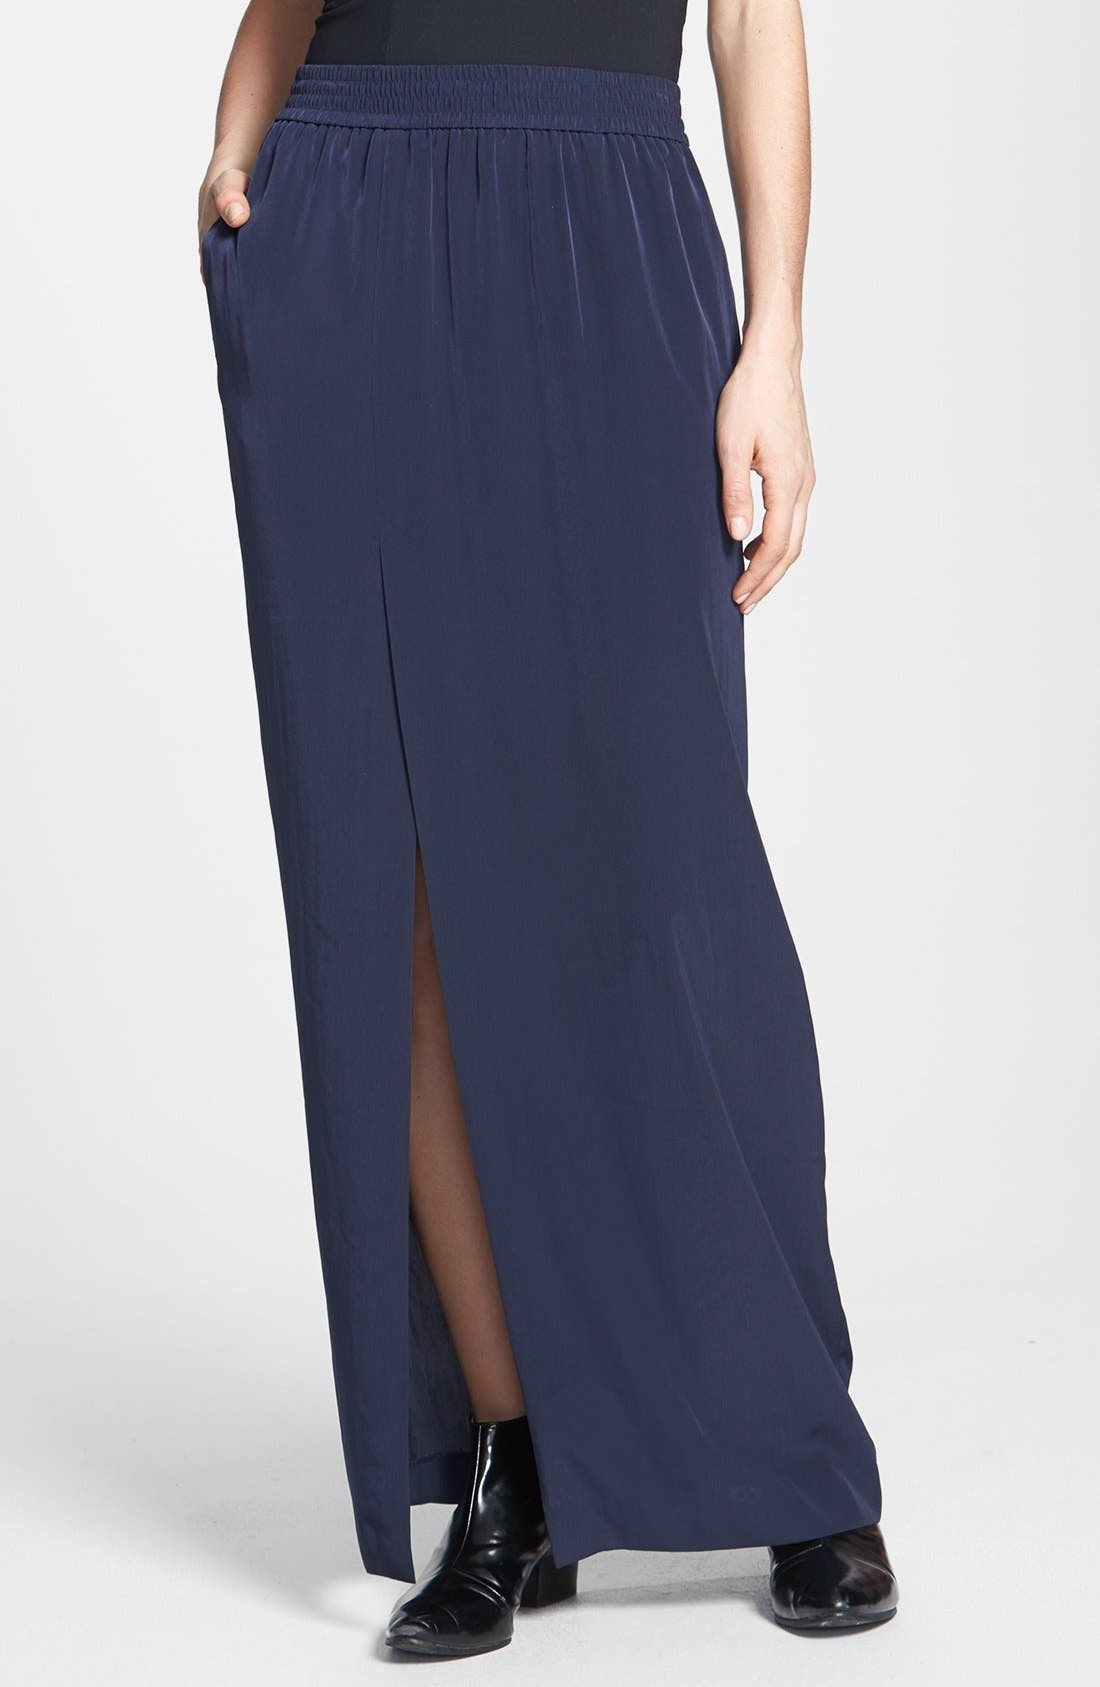 Alternate Image 1 Selected - Tildon Side Slit Maxi Skirt